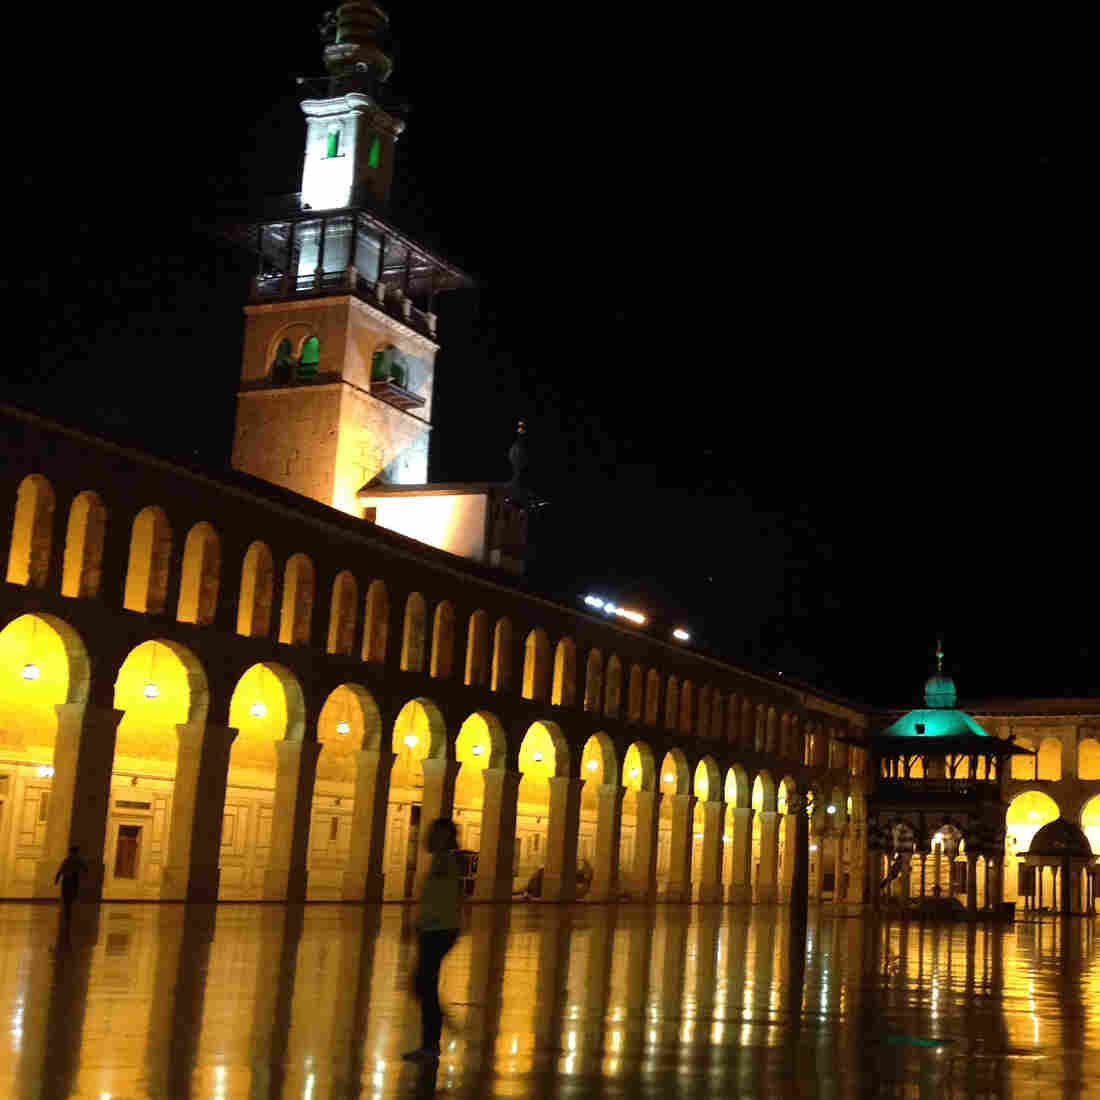 The Ummayyid Mosque in Damascus has been a mosque for around 1,400 years. It sits in the center of a city where many people are struggling to live normal lives amid war.